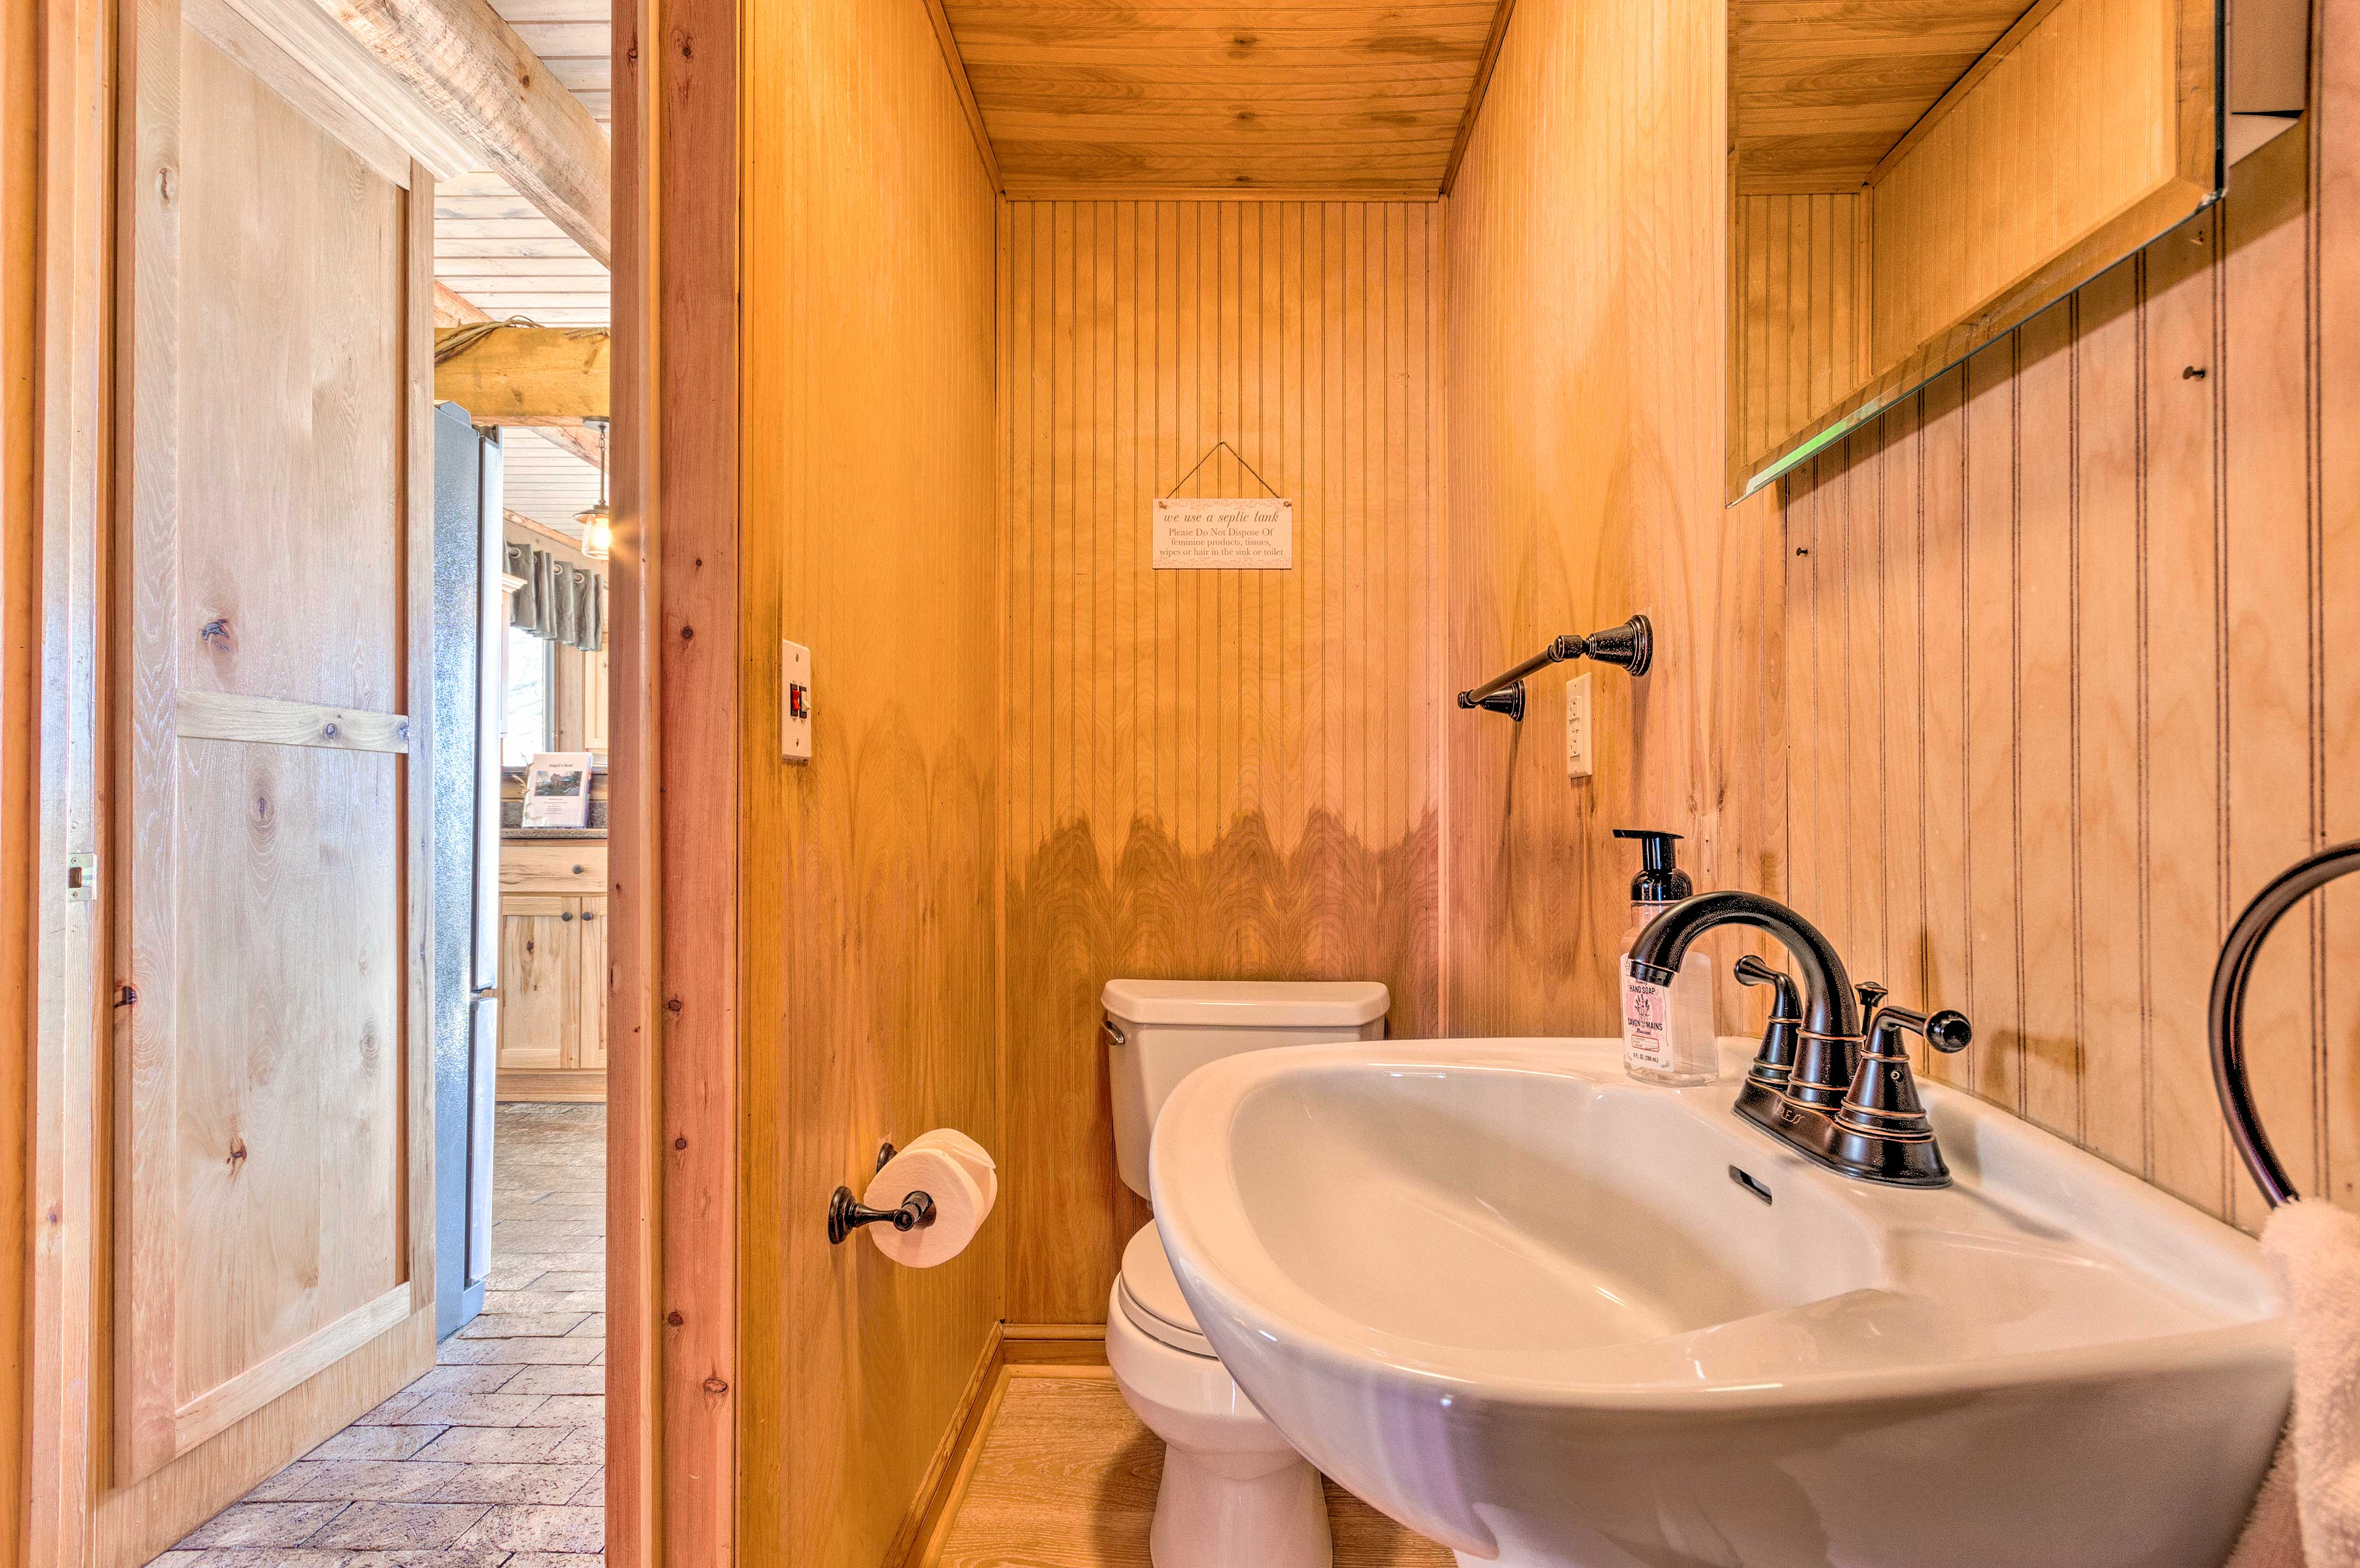 A half bath is located on the ground floor for extra convenience.